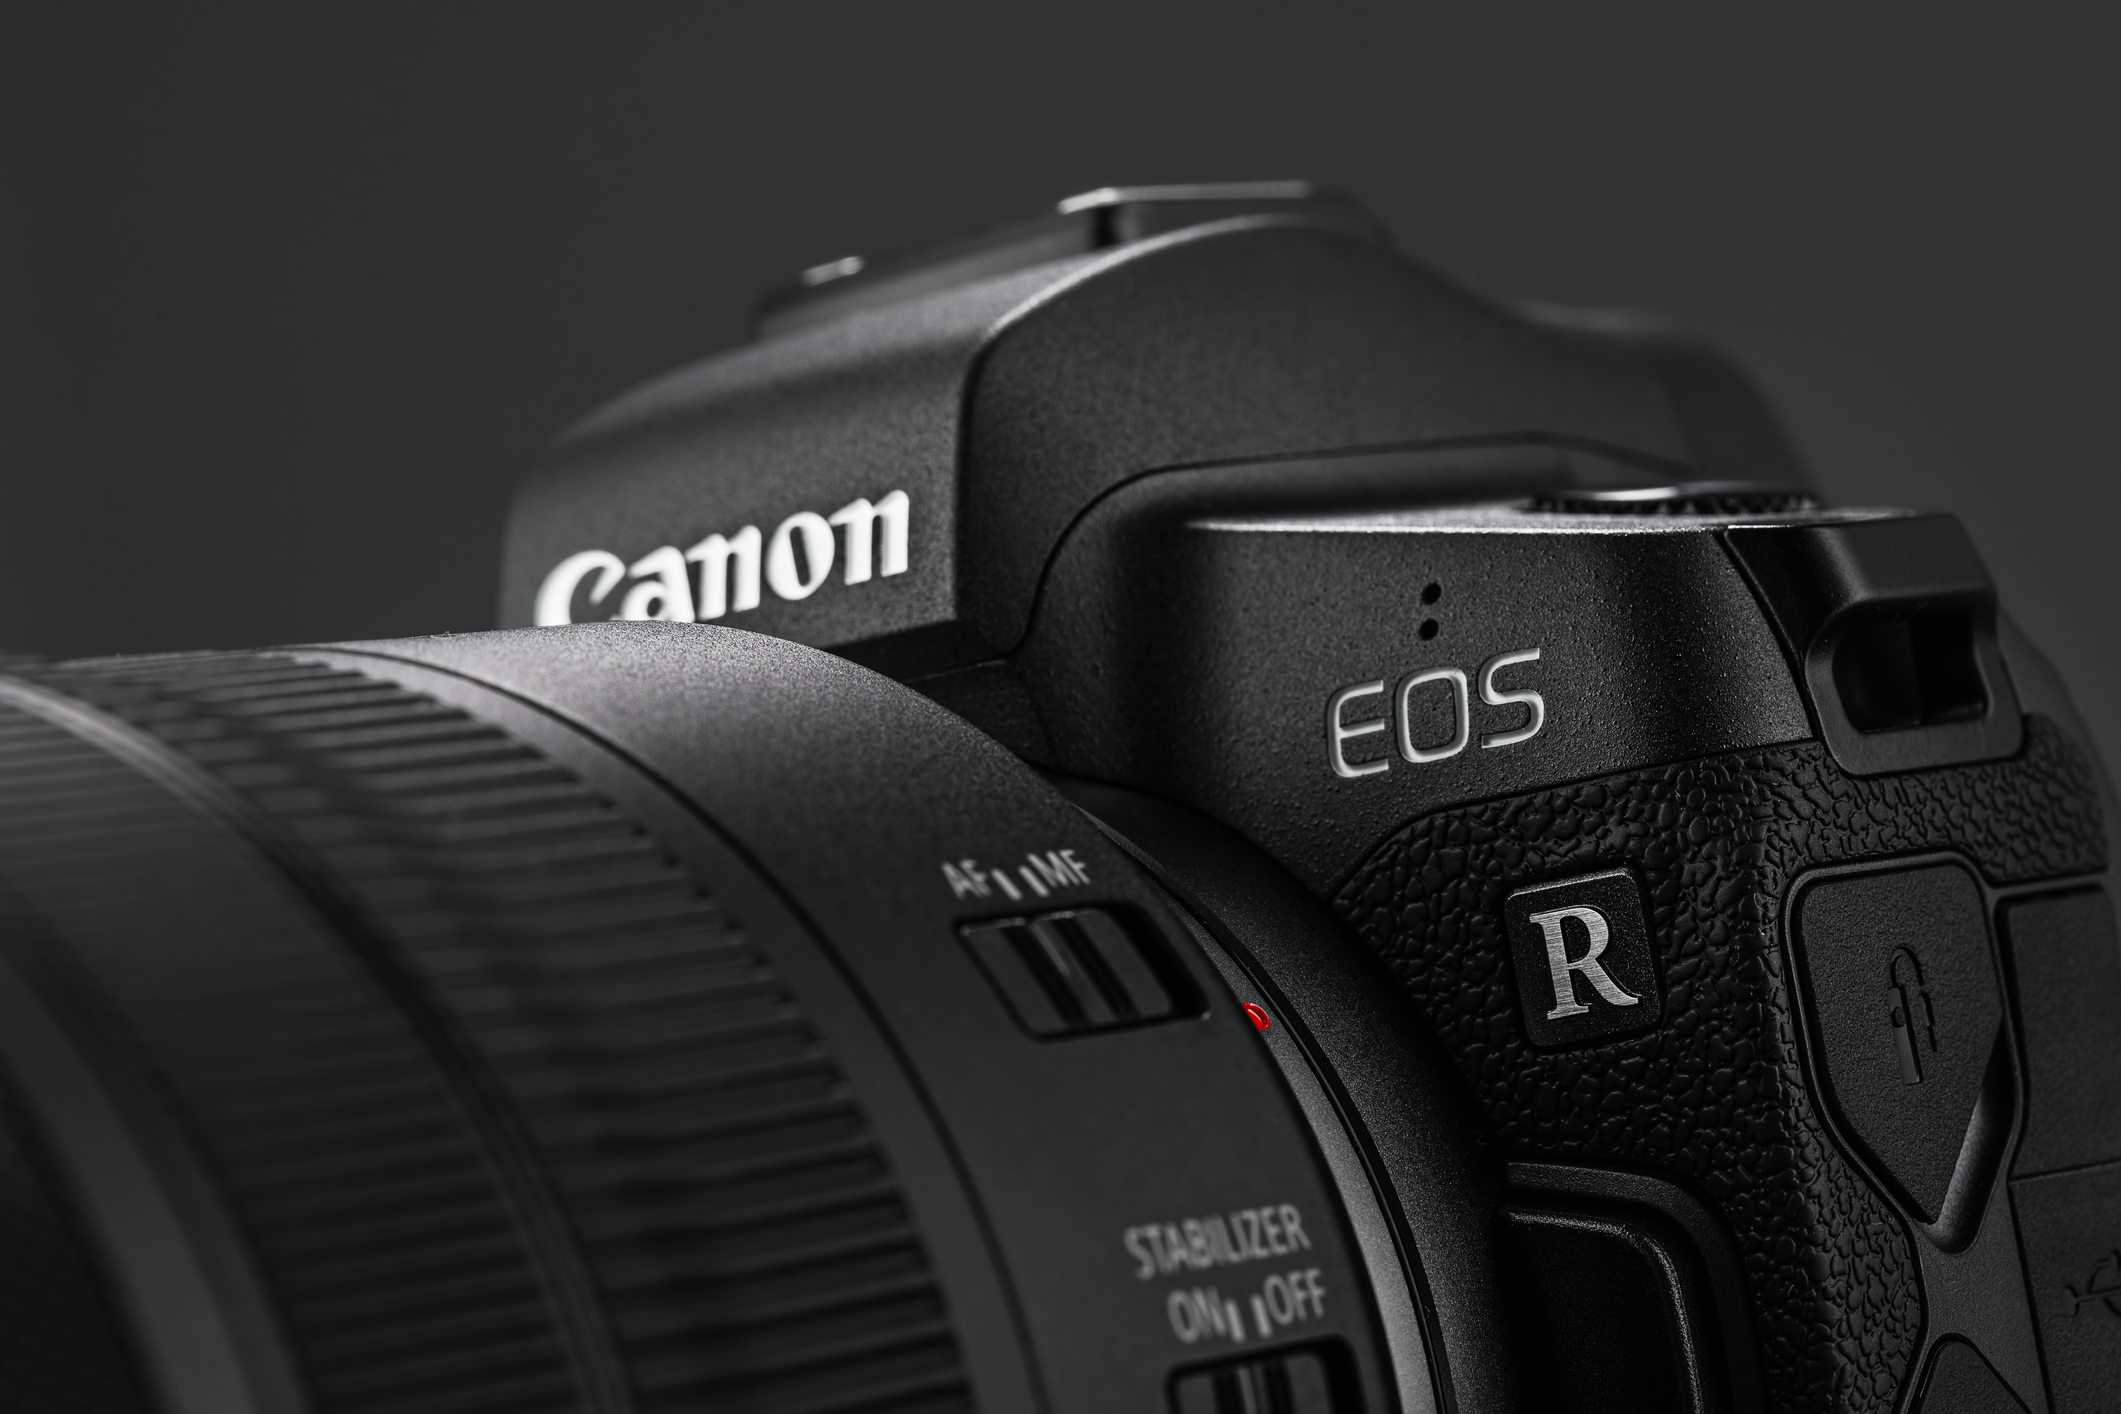 Camera Rumors 2019: Canon is Developing 3 New EOS R Cameras